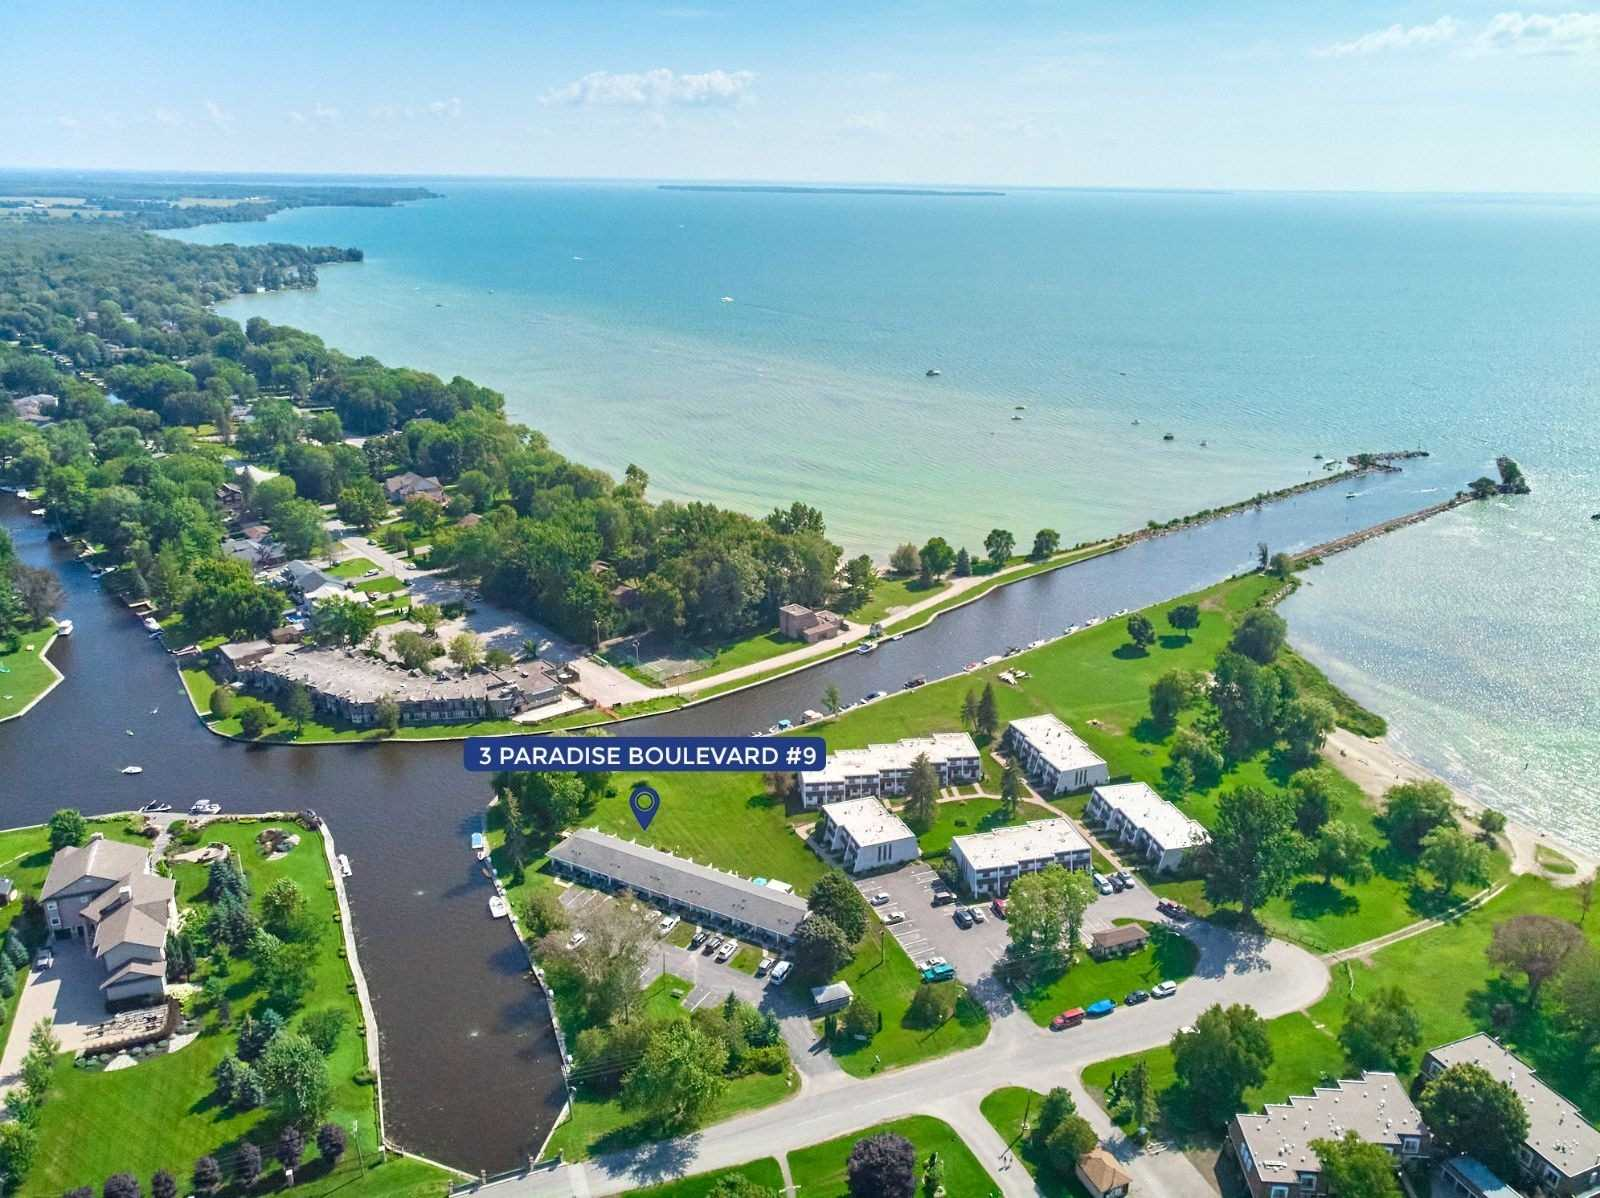 Easy-Living In Spectacular Lagoon City! Set On A No-Exit Street! Boat Slip Large Enough For A 30Ft Boat & Lagoon Access To Lake Simcoe! Condo Fees Cover All Maintenance, Allowing You To Relax More! Updated Laminate Flooring (2020), Bath With In-Floor Heat (2020), & Kitchen Counters (2021). Glass Wall W/ W/O & Water Views & Cozy Fp! Future Development To Allow For A 2nd Bed & 2nd-Story Balcony! You Won't Want To Miss This Fantastic #hometostay! Visit Our Site!